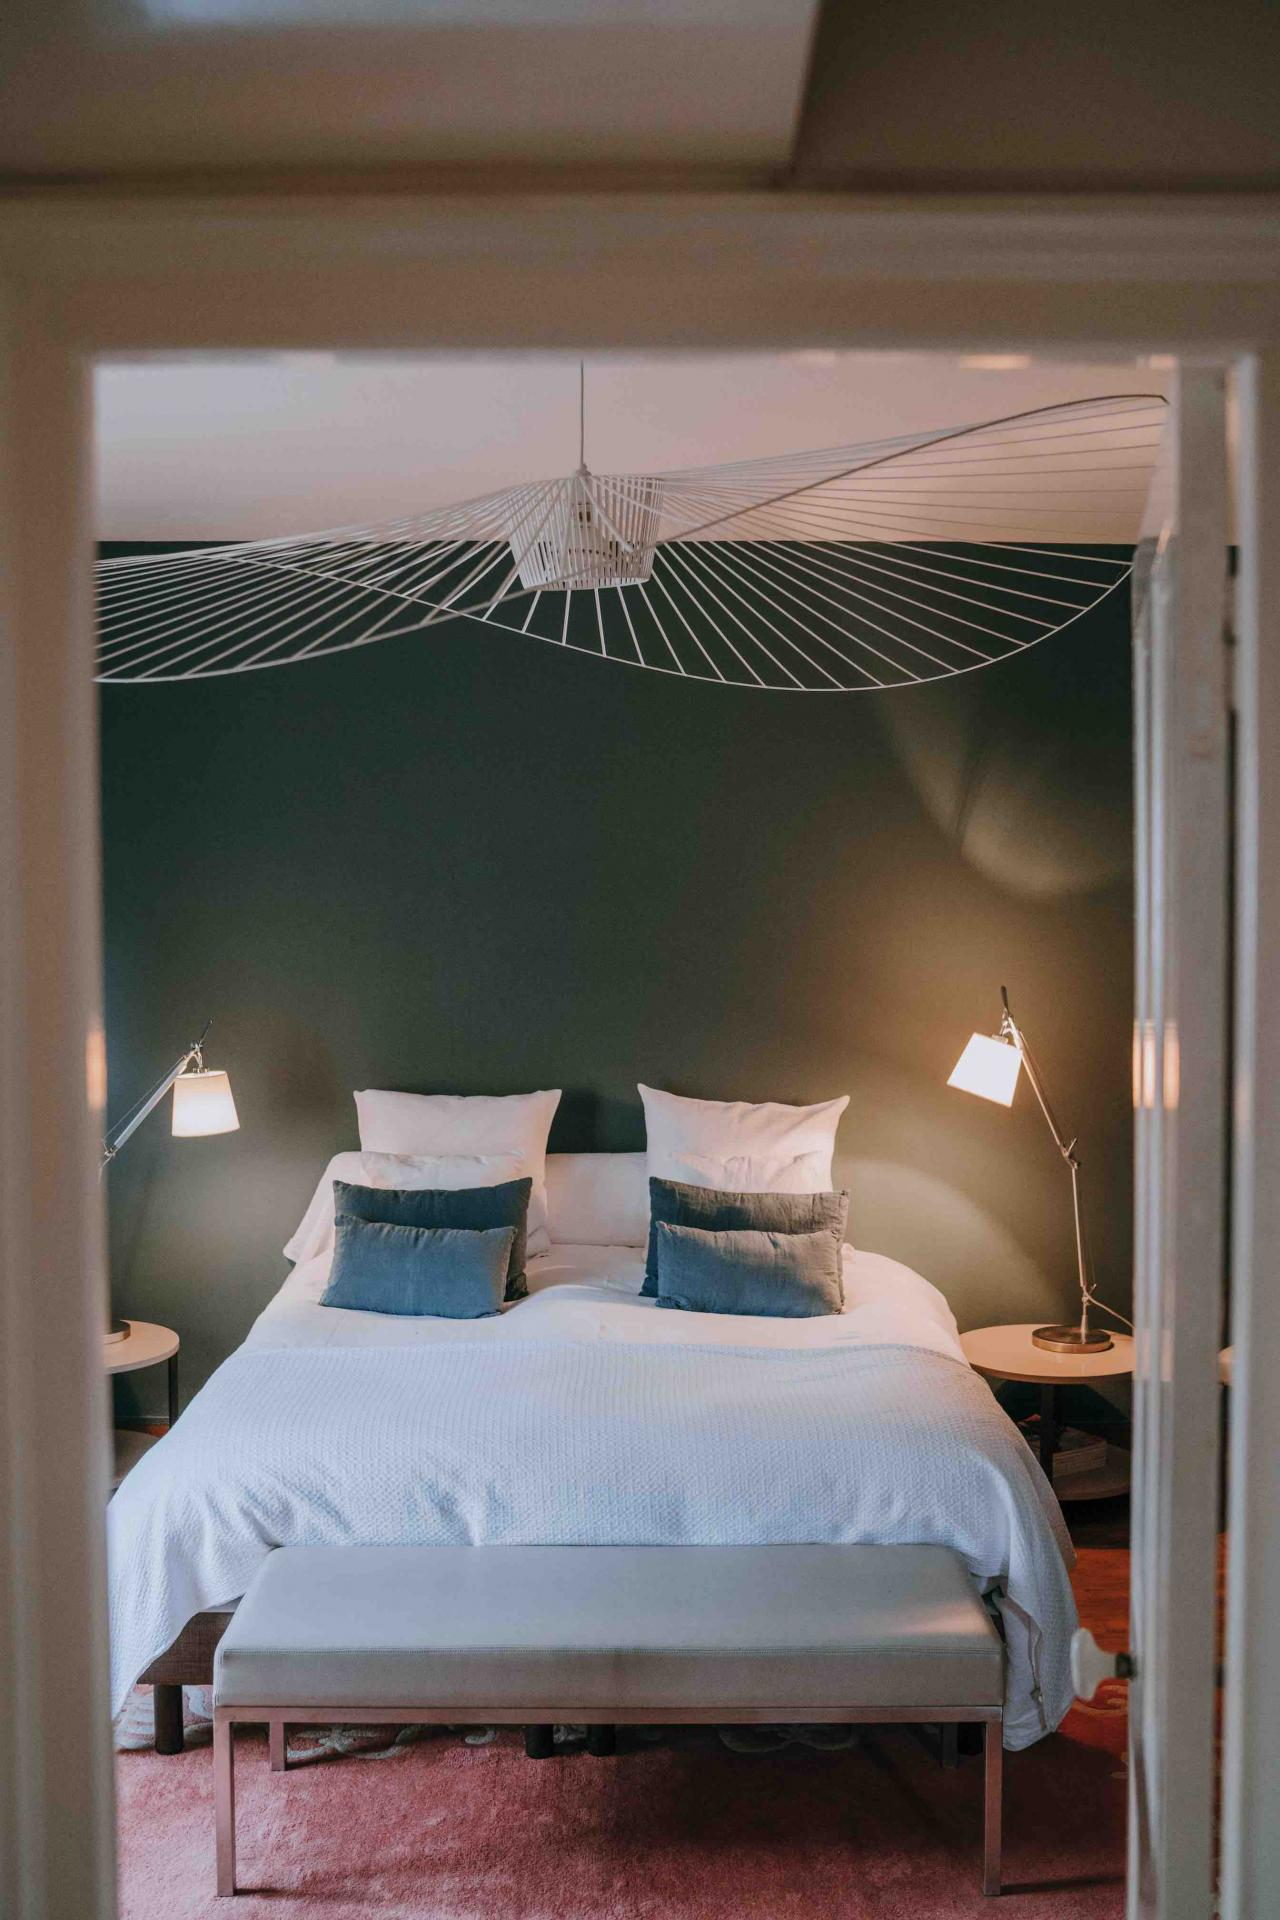 Suite dufy castel jolly rennes chambres d hotes